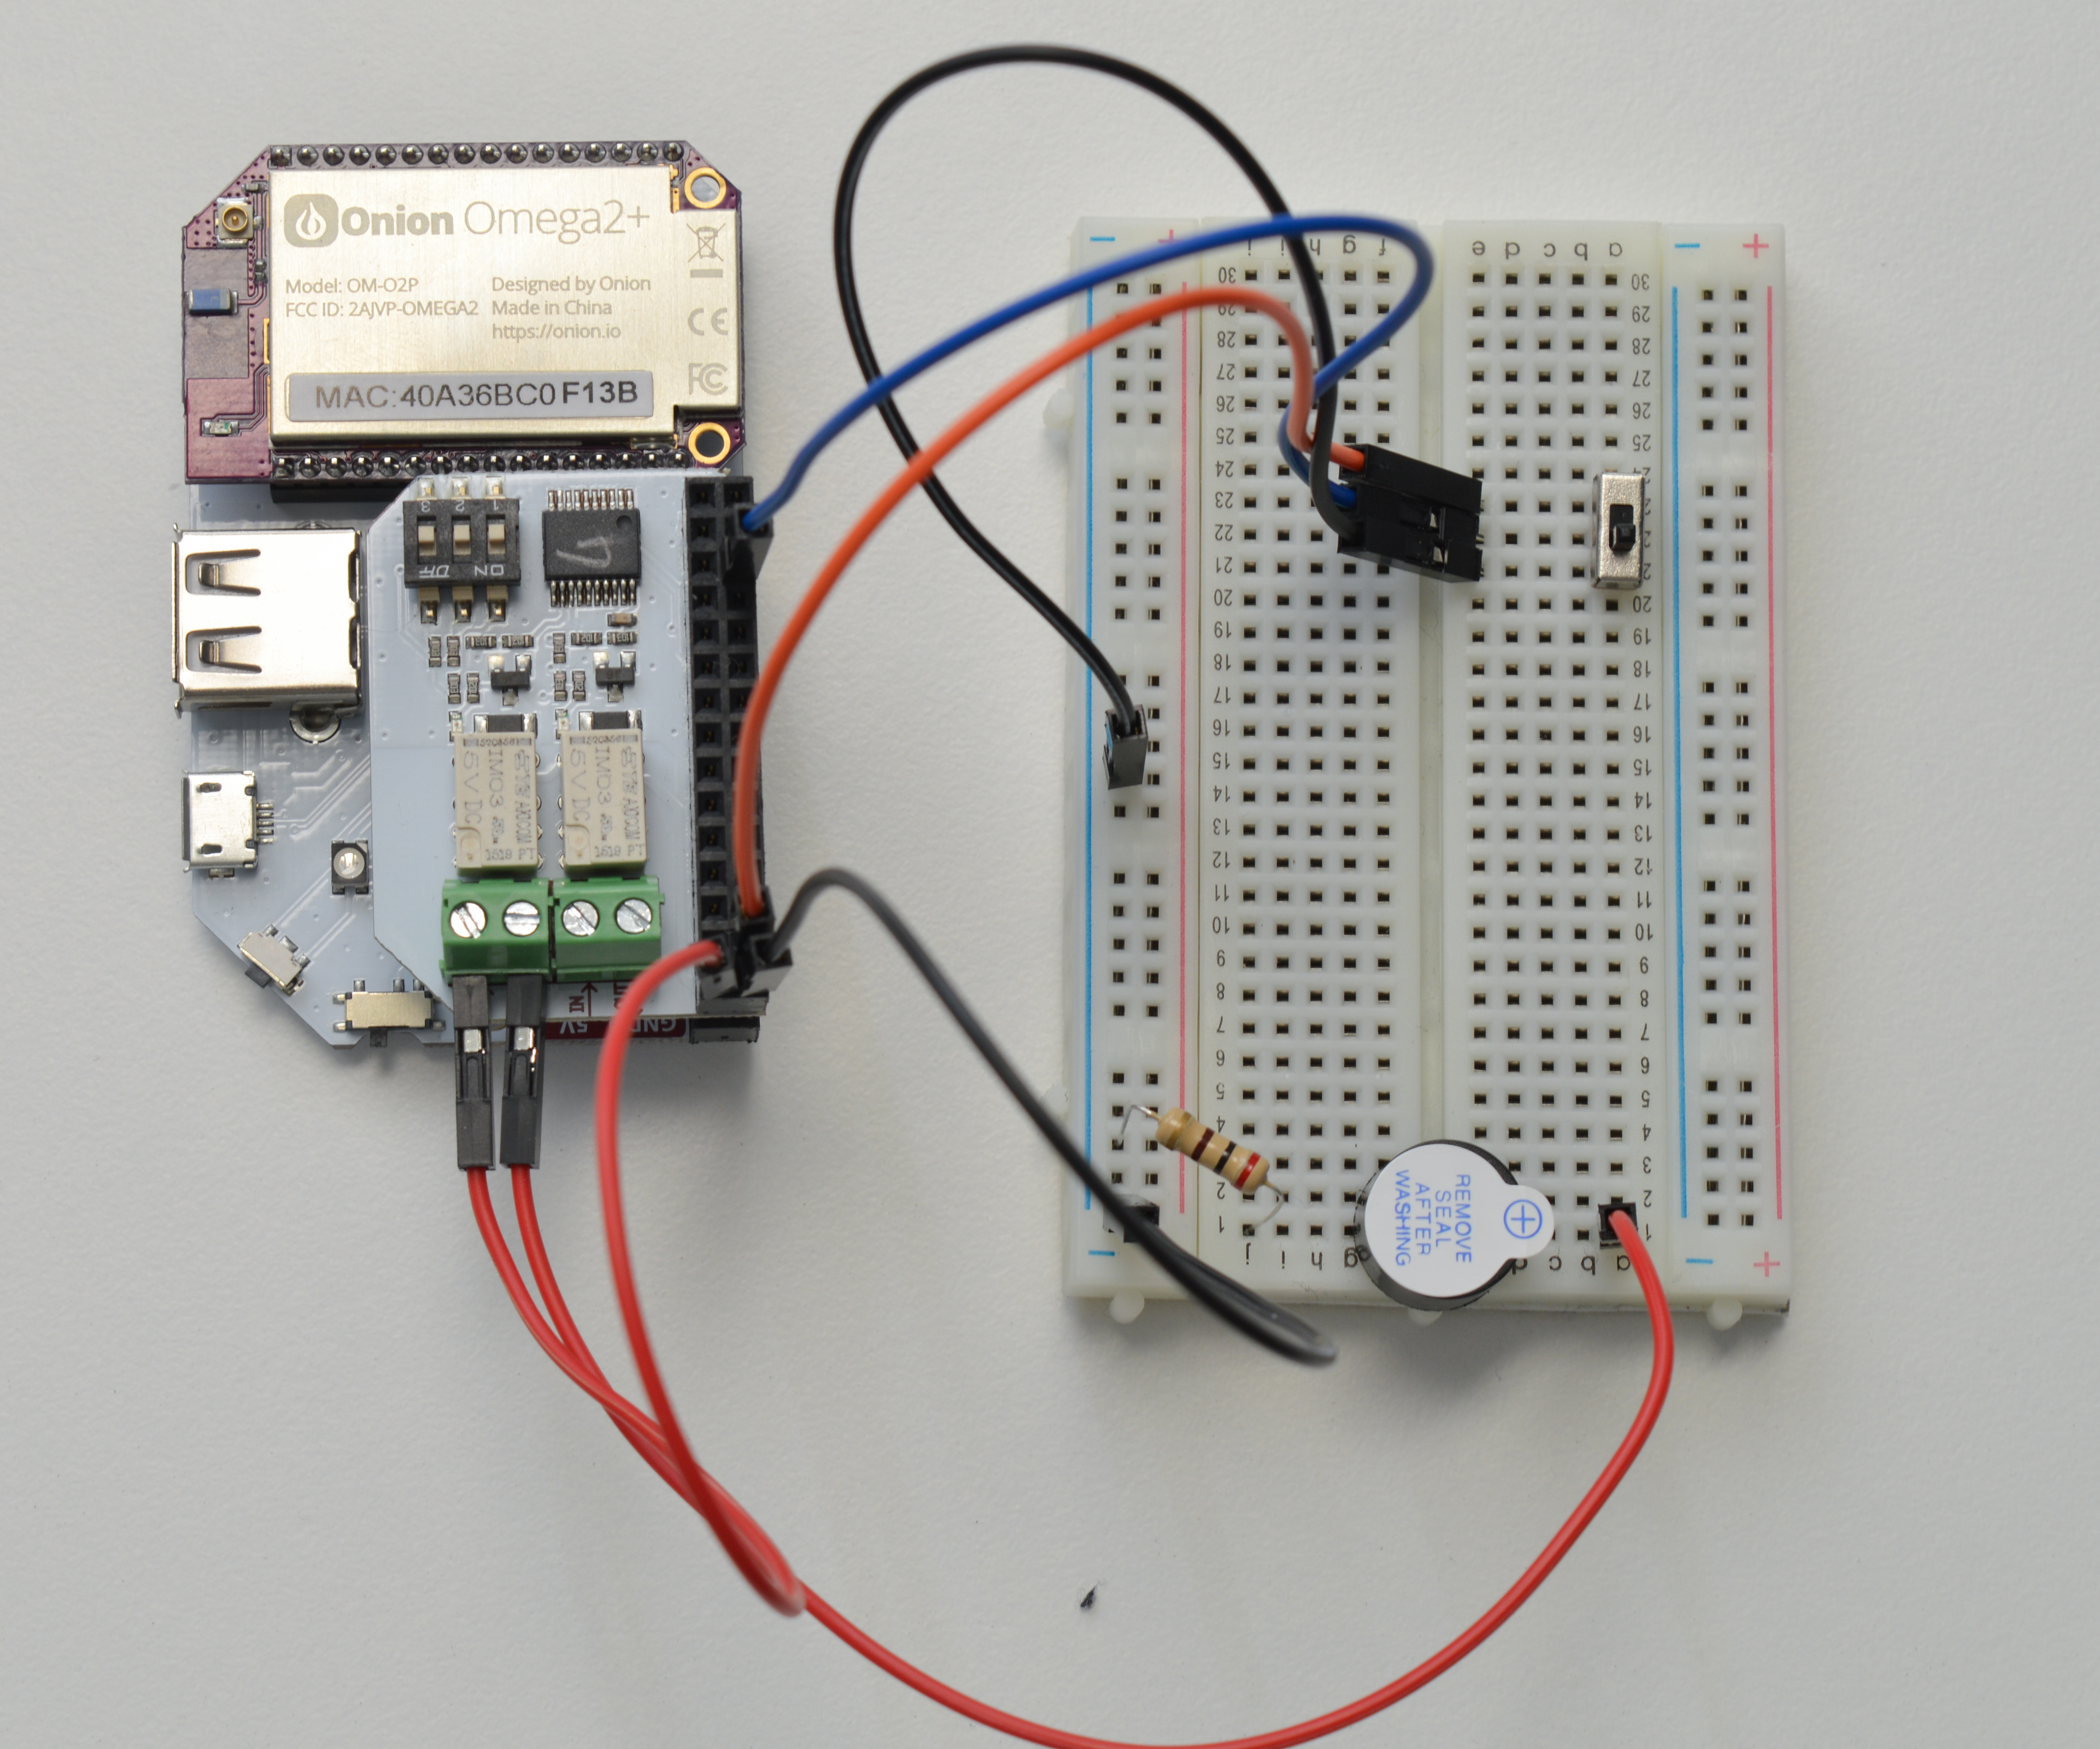 Onion Omega2 Maker Kit Circuit Closed Until The Limit Switch Opens Relay Is And Buzzer Wired In